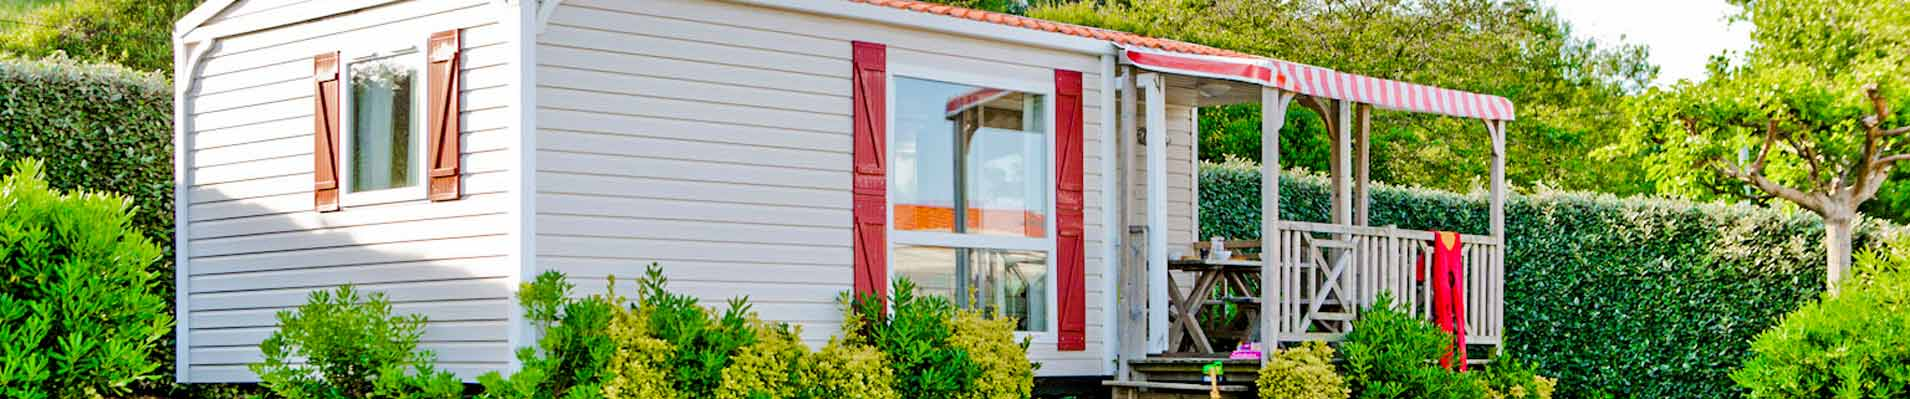 Mobile home confort Saint jean de luz